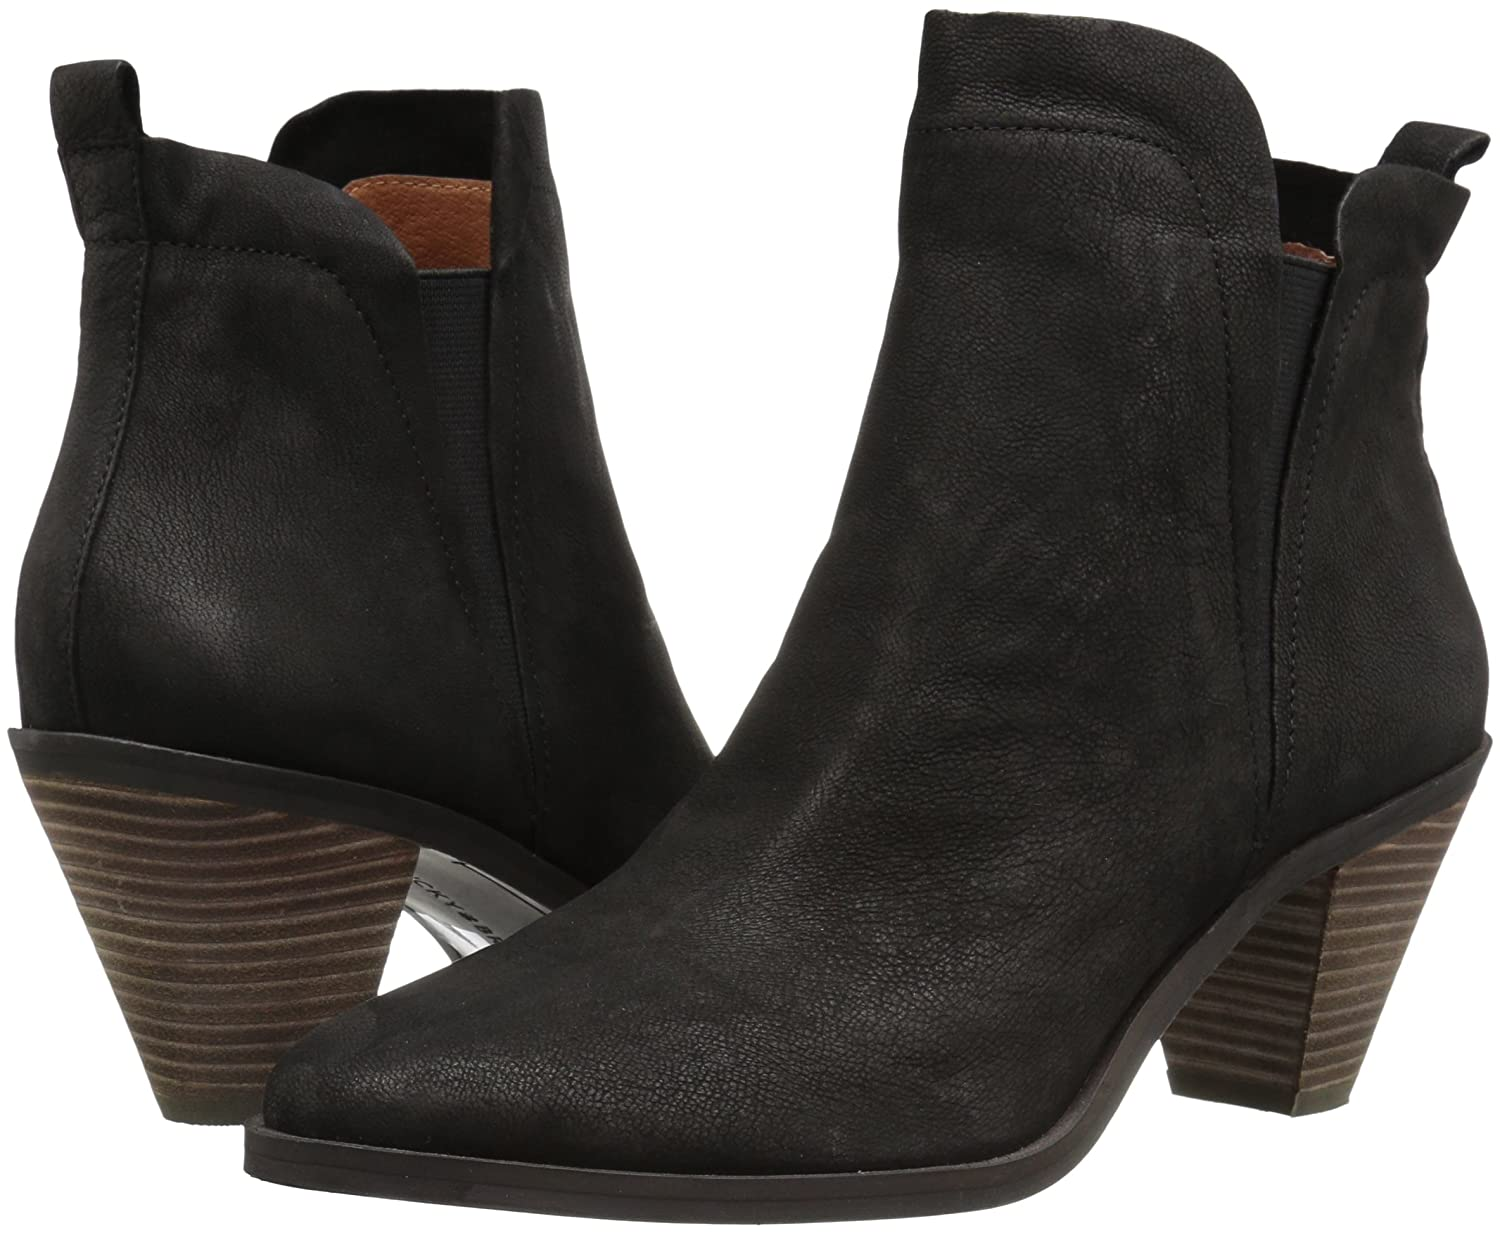 Lucky Brand Women's Jana Fashion Boot B06XCN8BVS 6.5 M US|Black